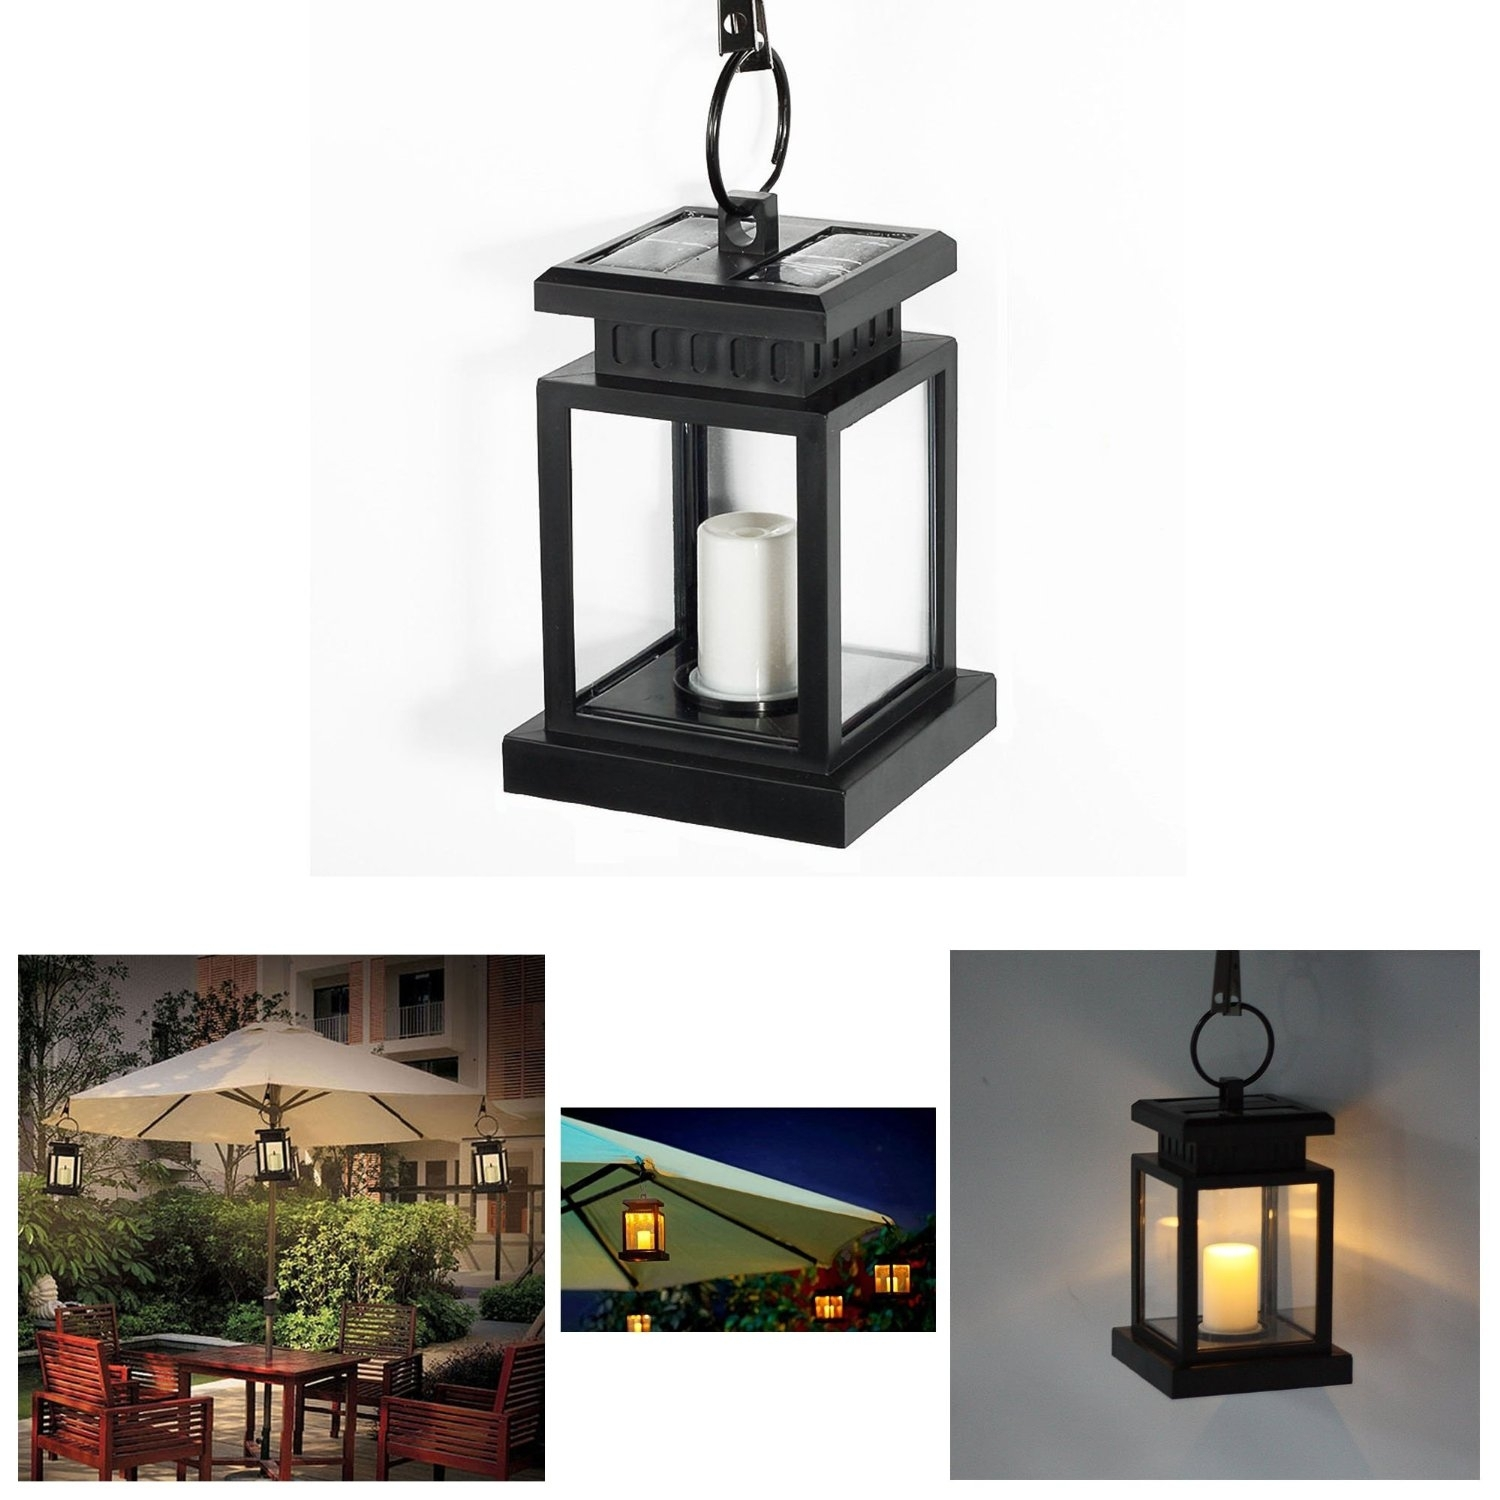 Solar Powered Hanging Umbrella Lantern Candle Led Light With Clamp Regarding Outdoor Hanging Lanterns With Candles (View 7 of 15)